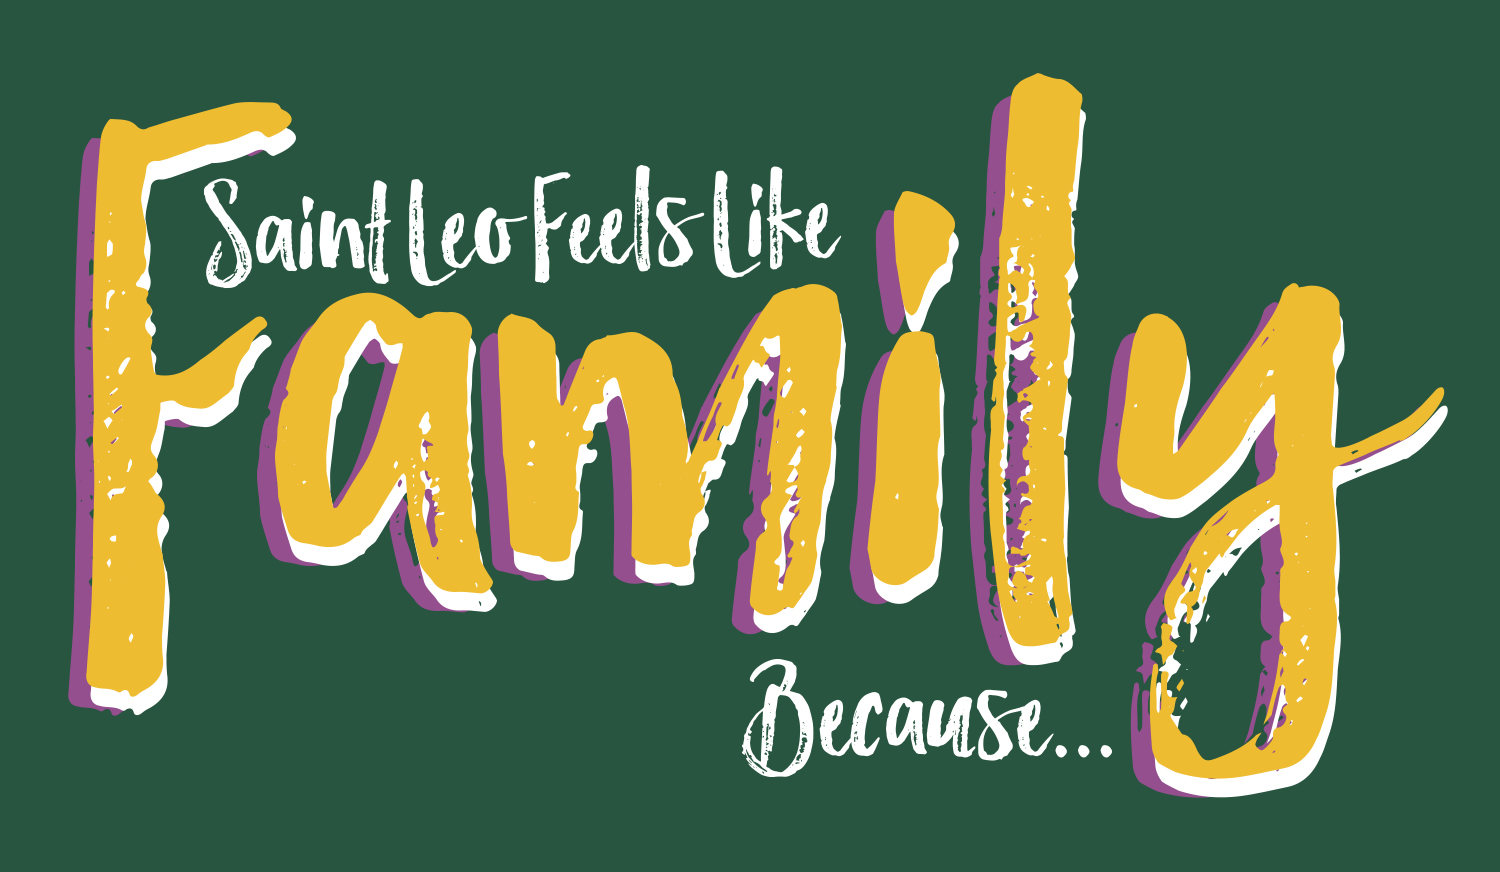 Saint Leo Feels Like a Family Because…